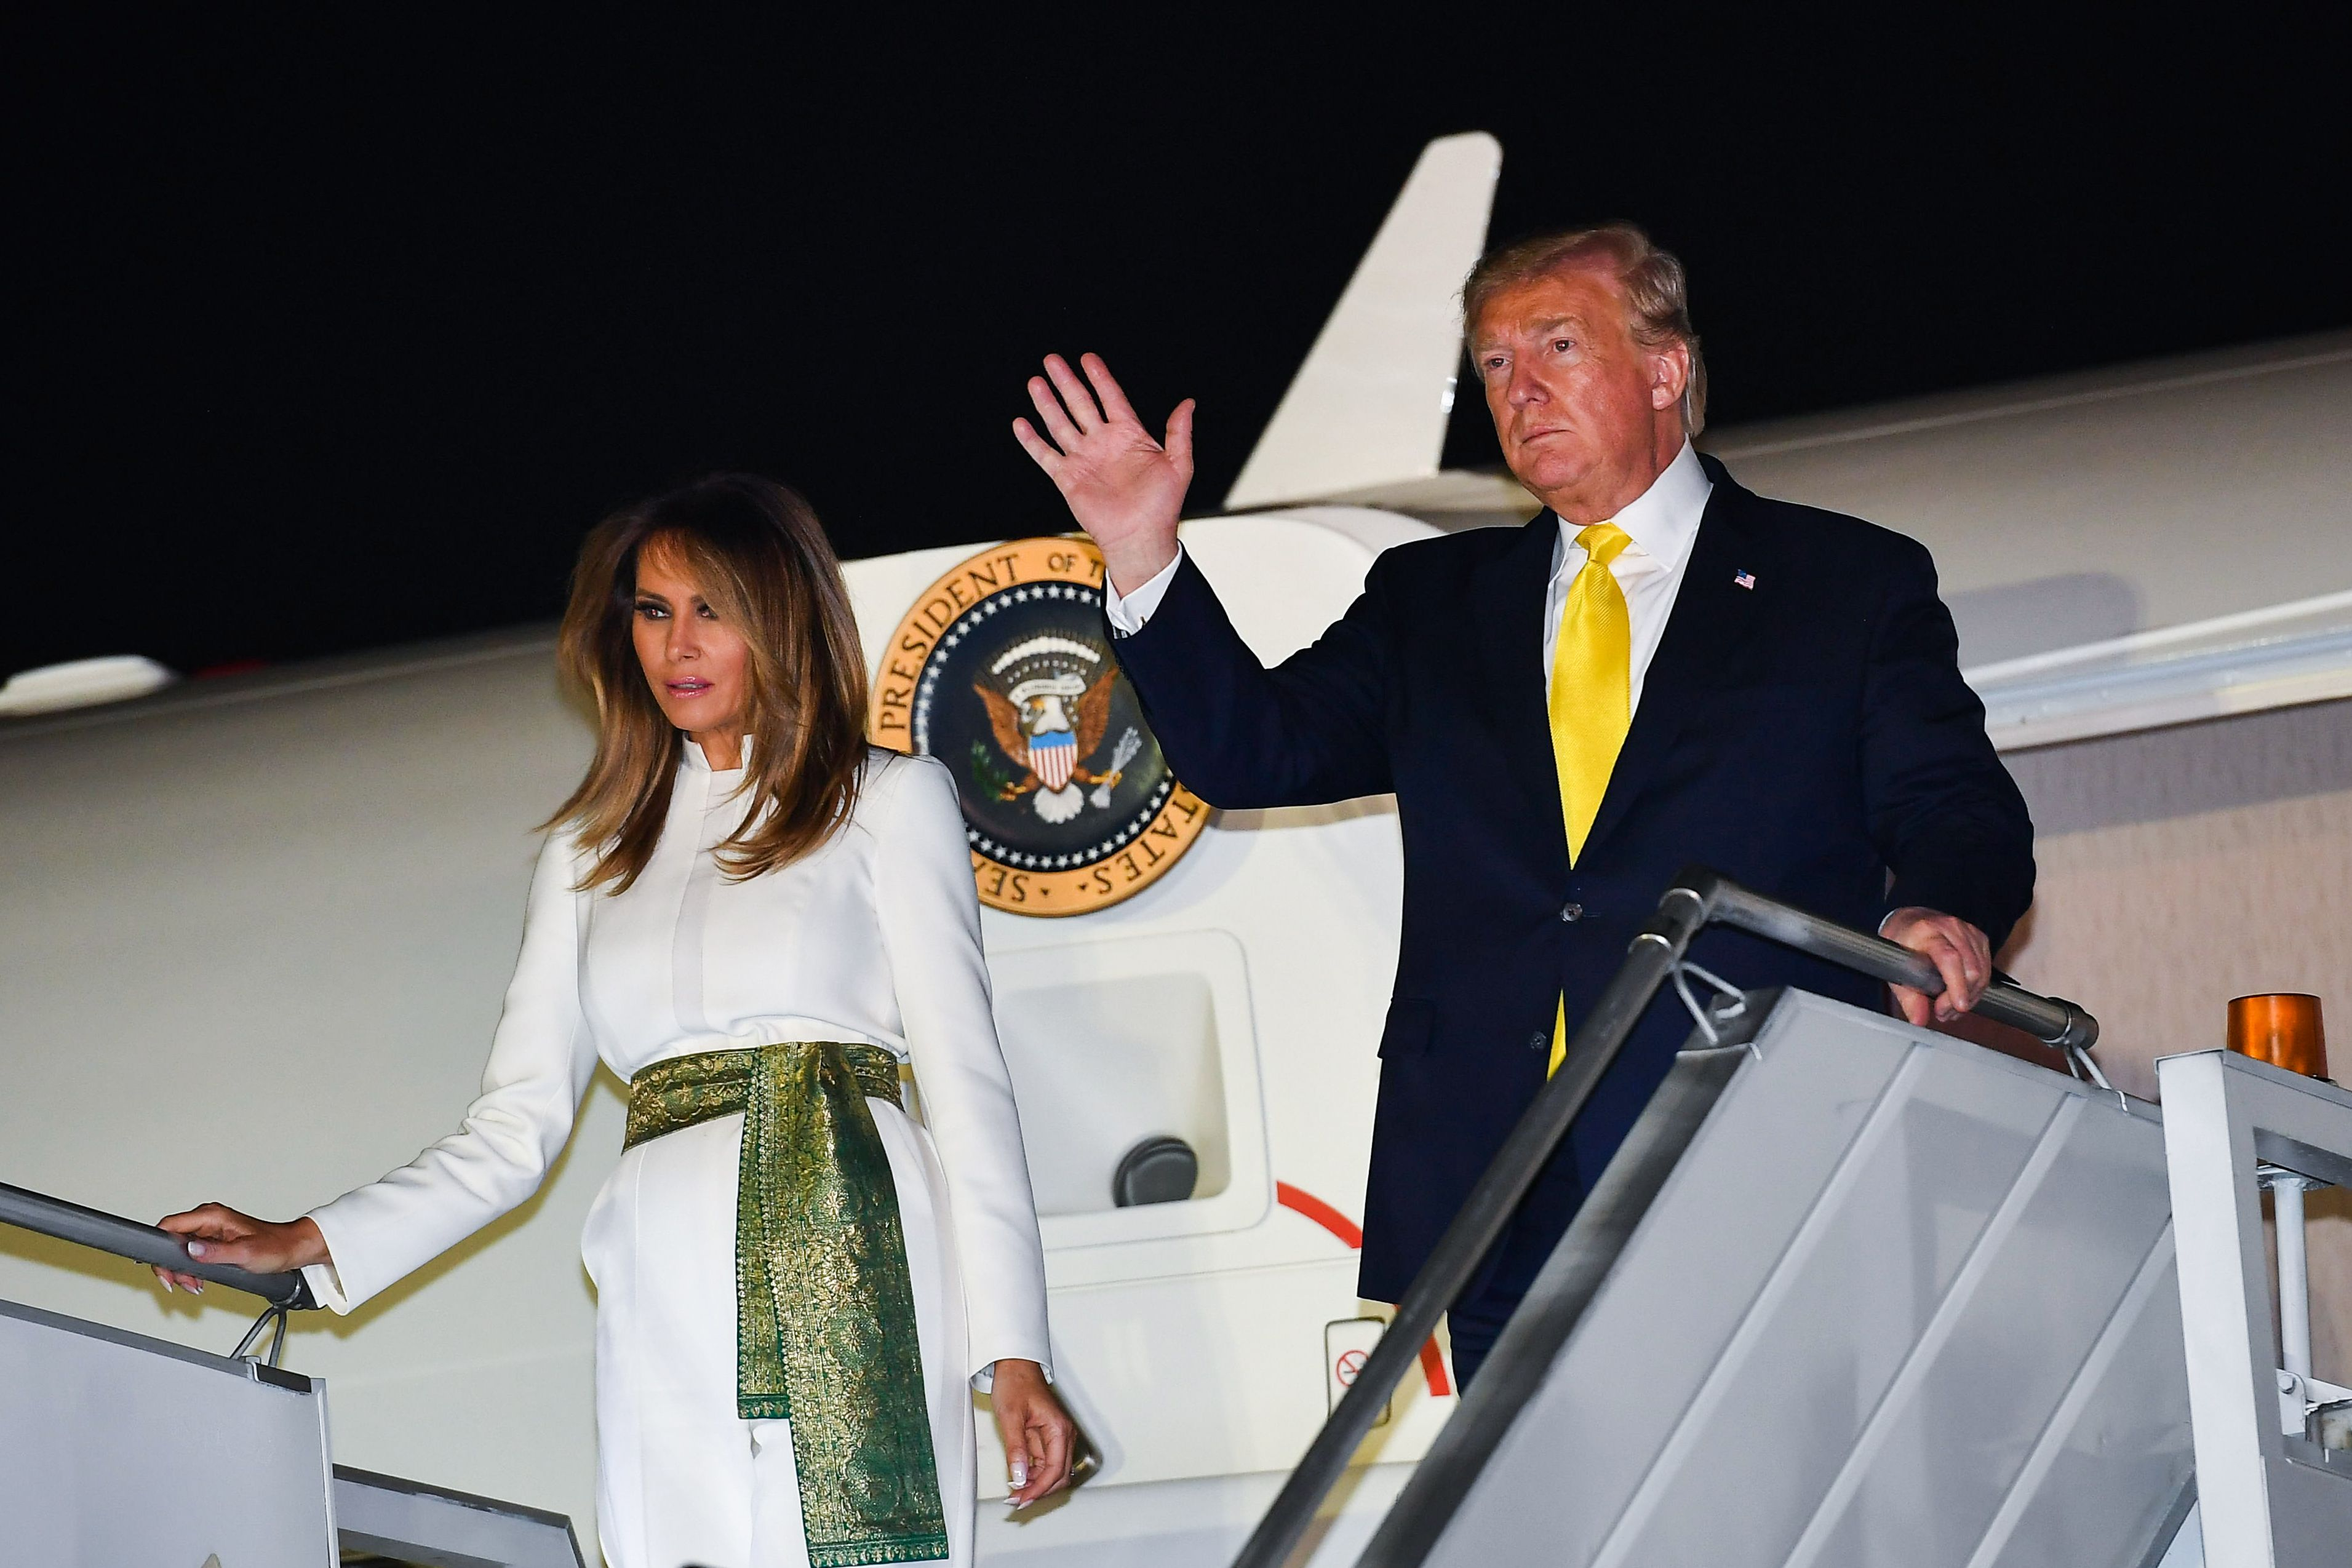 US President Donald Trump and the first lady disembark in New Delhi on Monday evening.